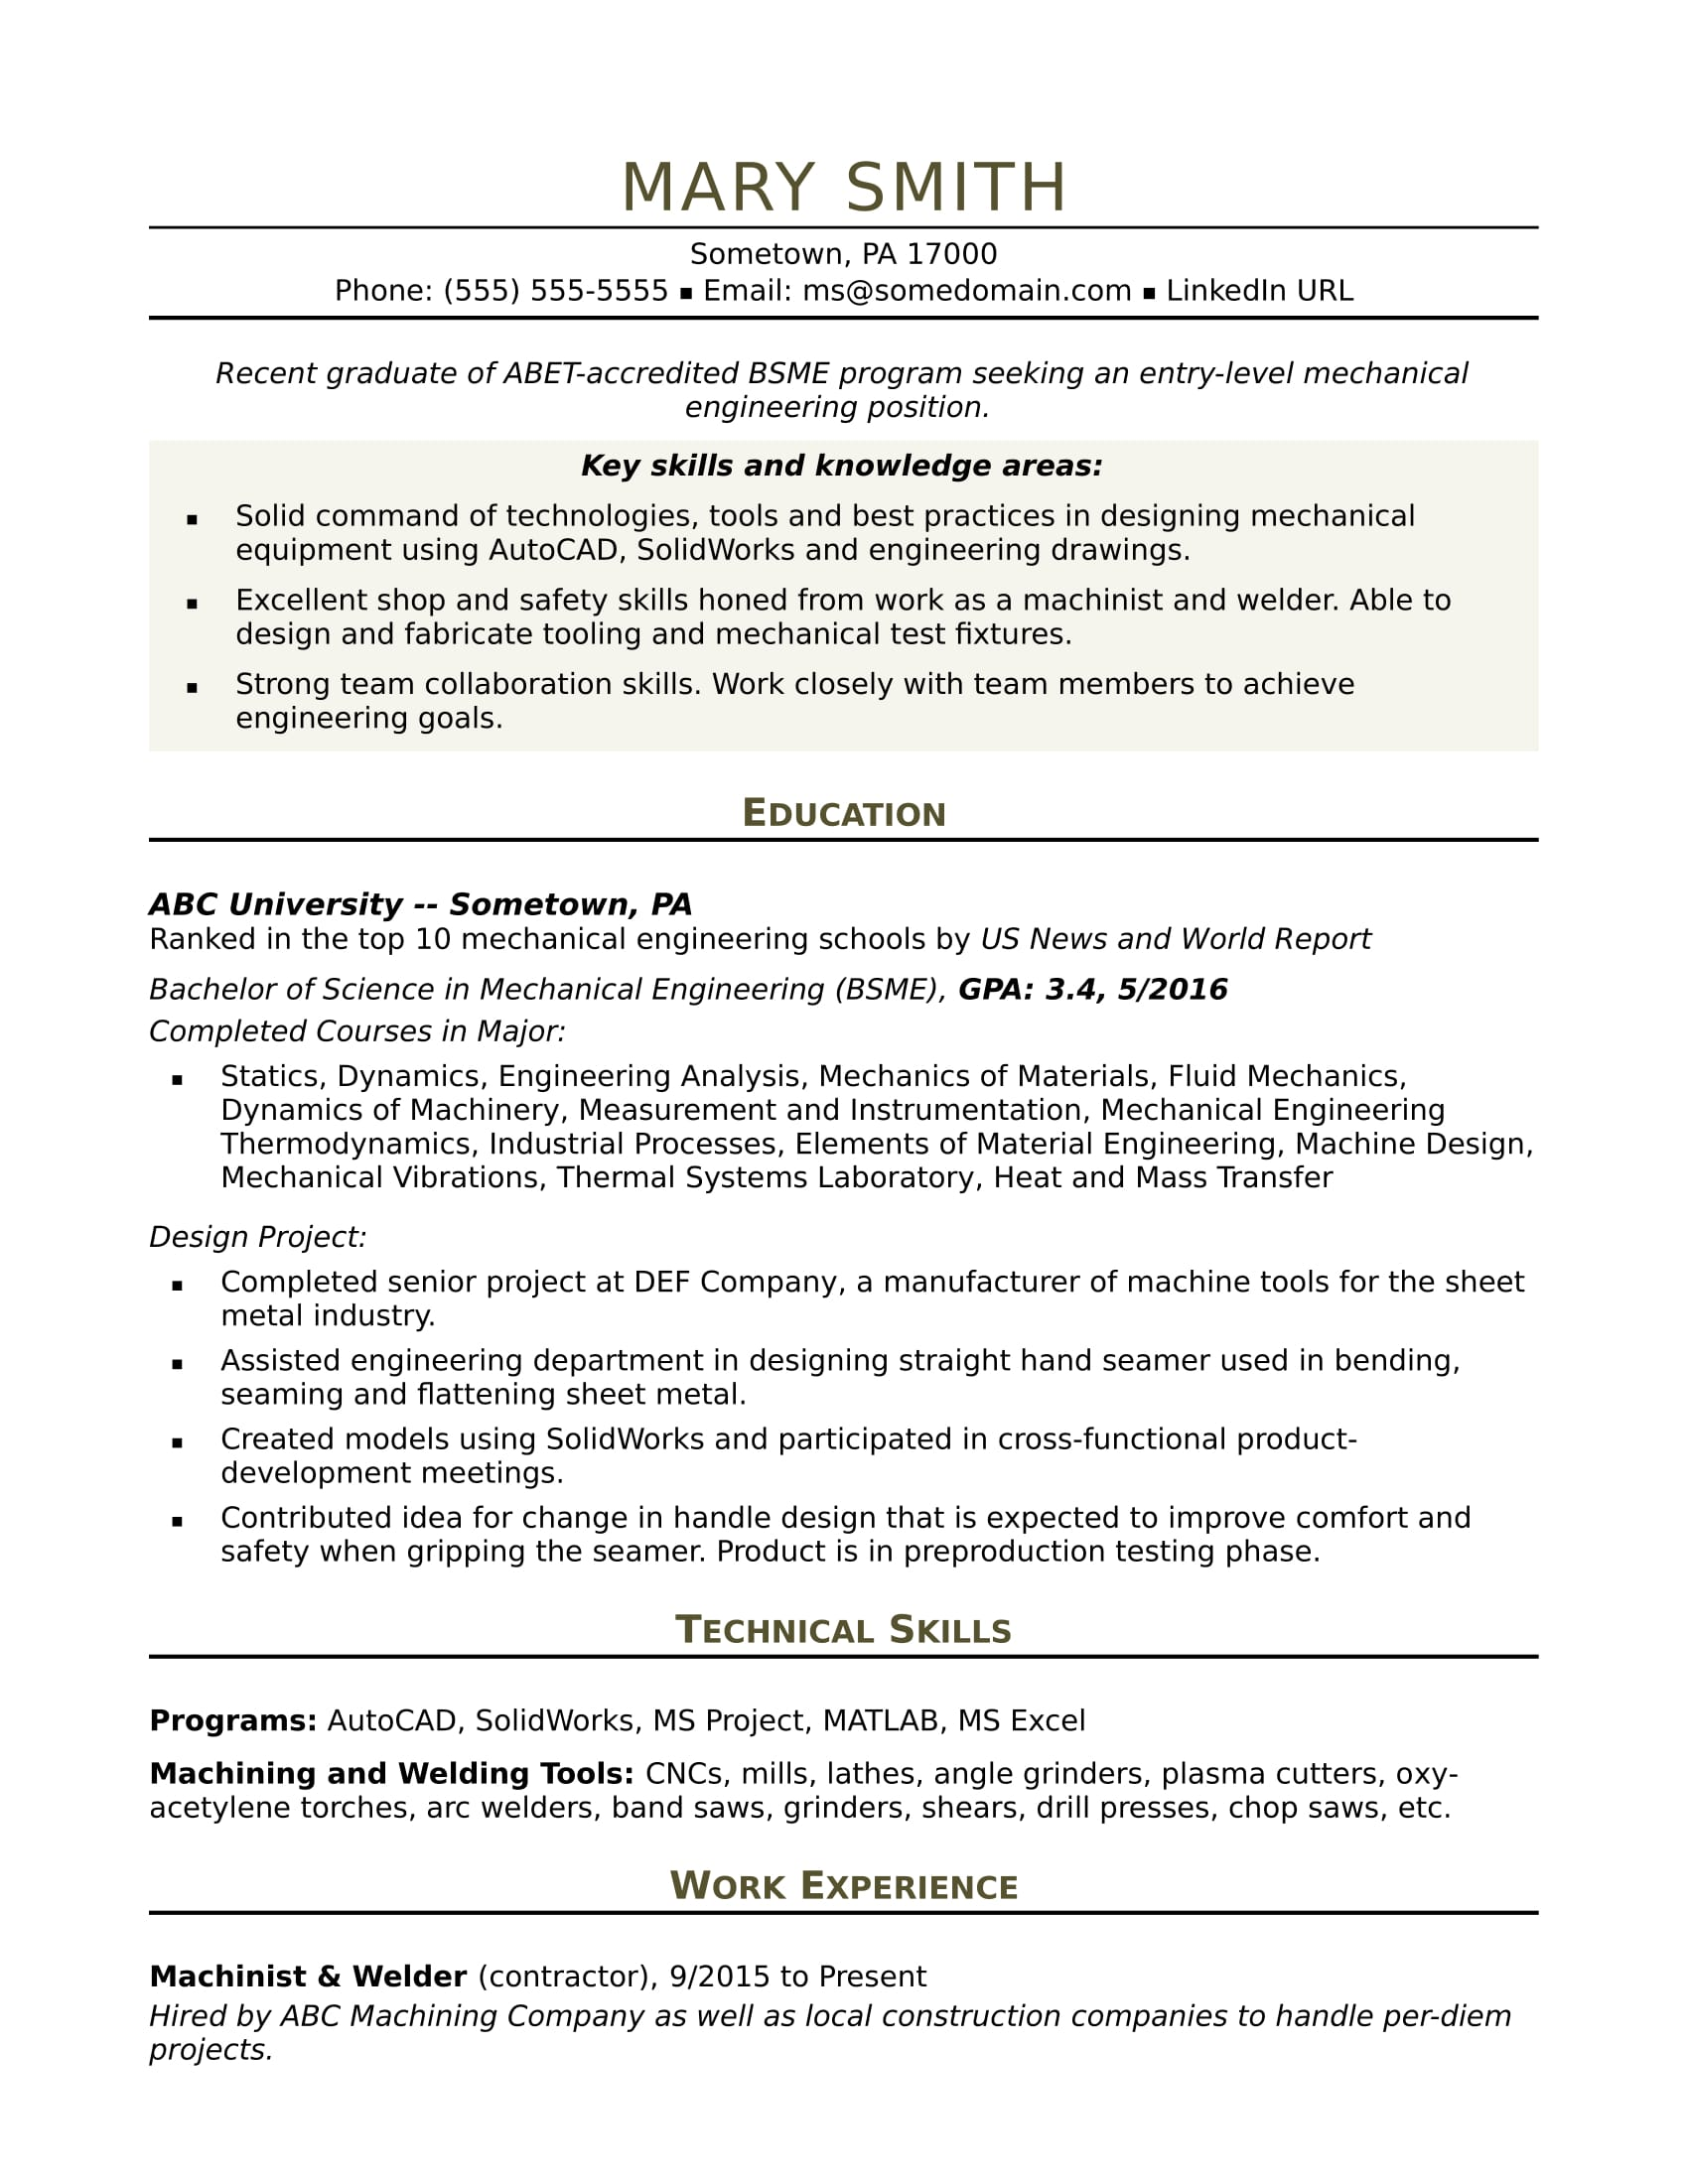 sample resume for an entry level mechanical engineer monster recent graduate summary Resume Recent Graduate Summary Resume